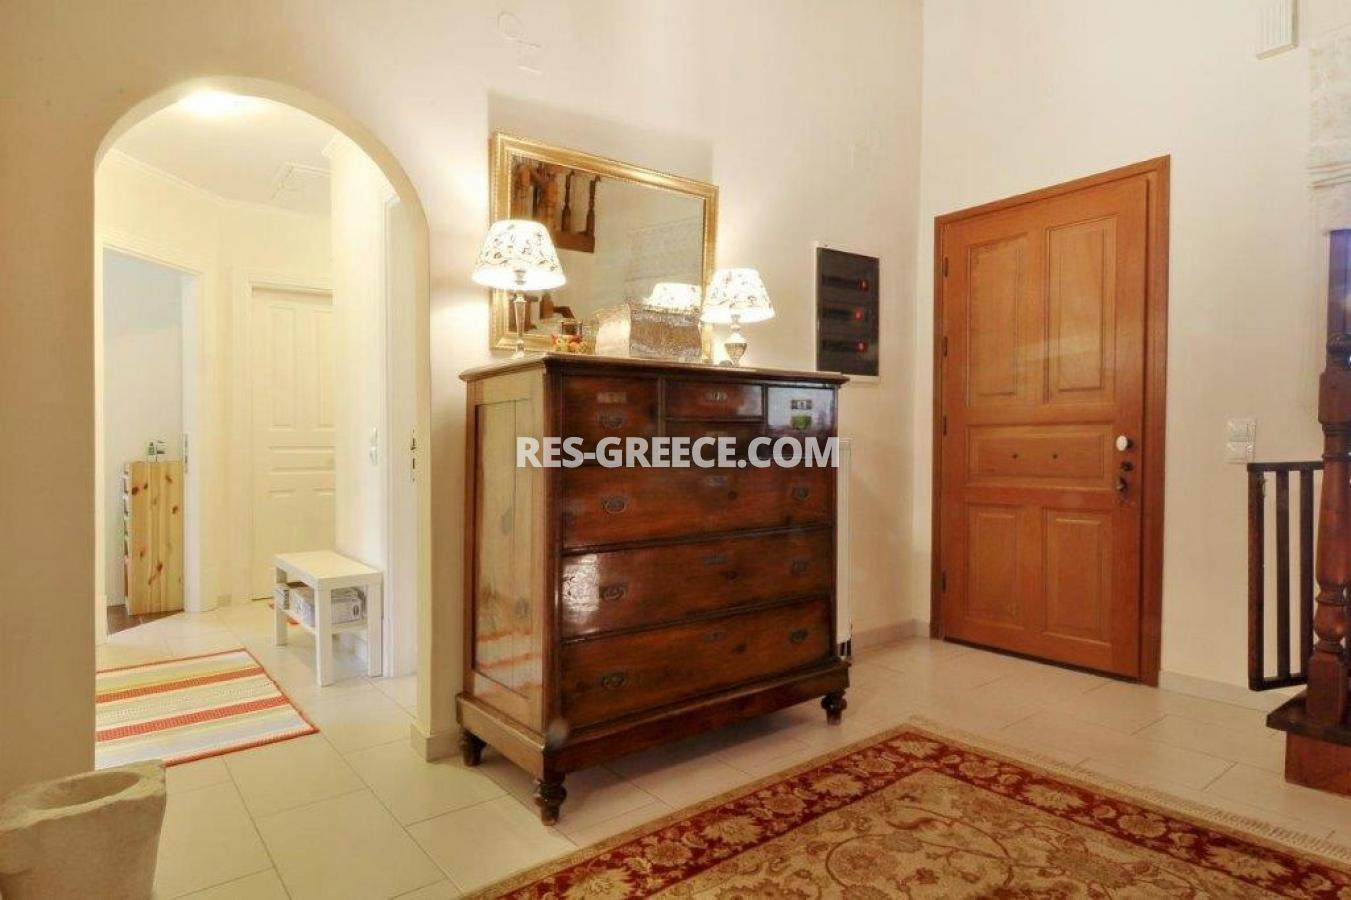 Poulades, Ionian Islands, Greece - Mediterranean bungalow for sale in Corfu - Photo 22